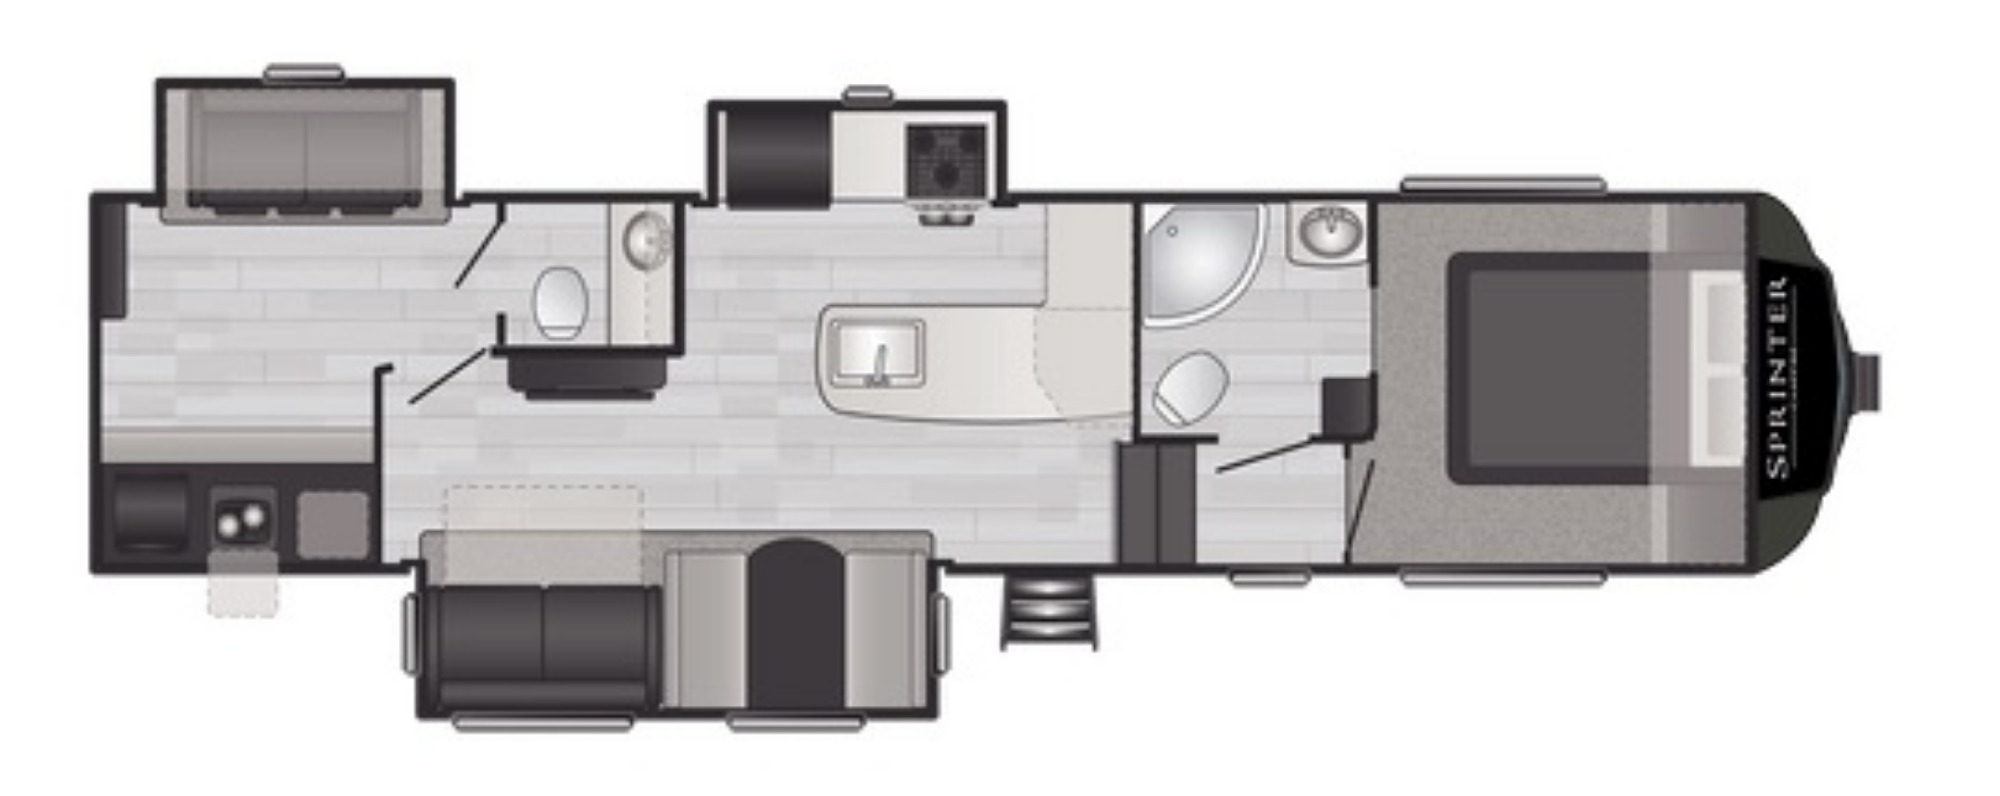 View Floor Plan for 2021 KEYSTONE SPRINTER F32BH